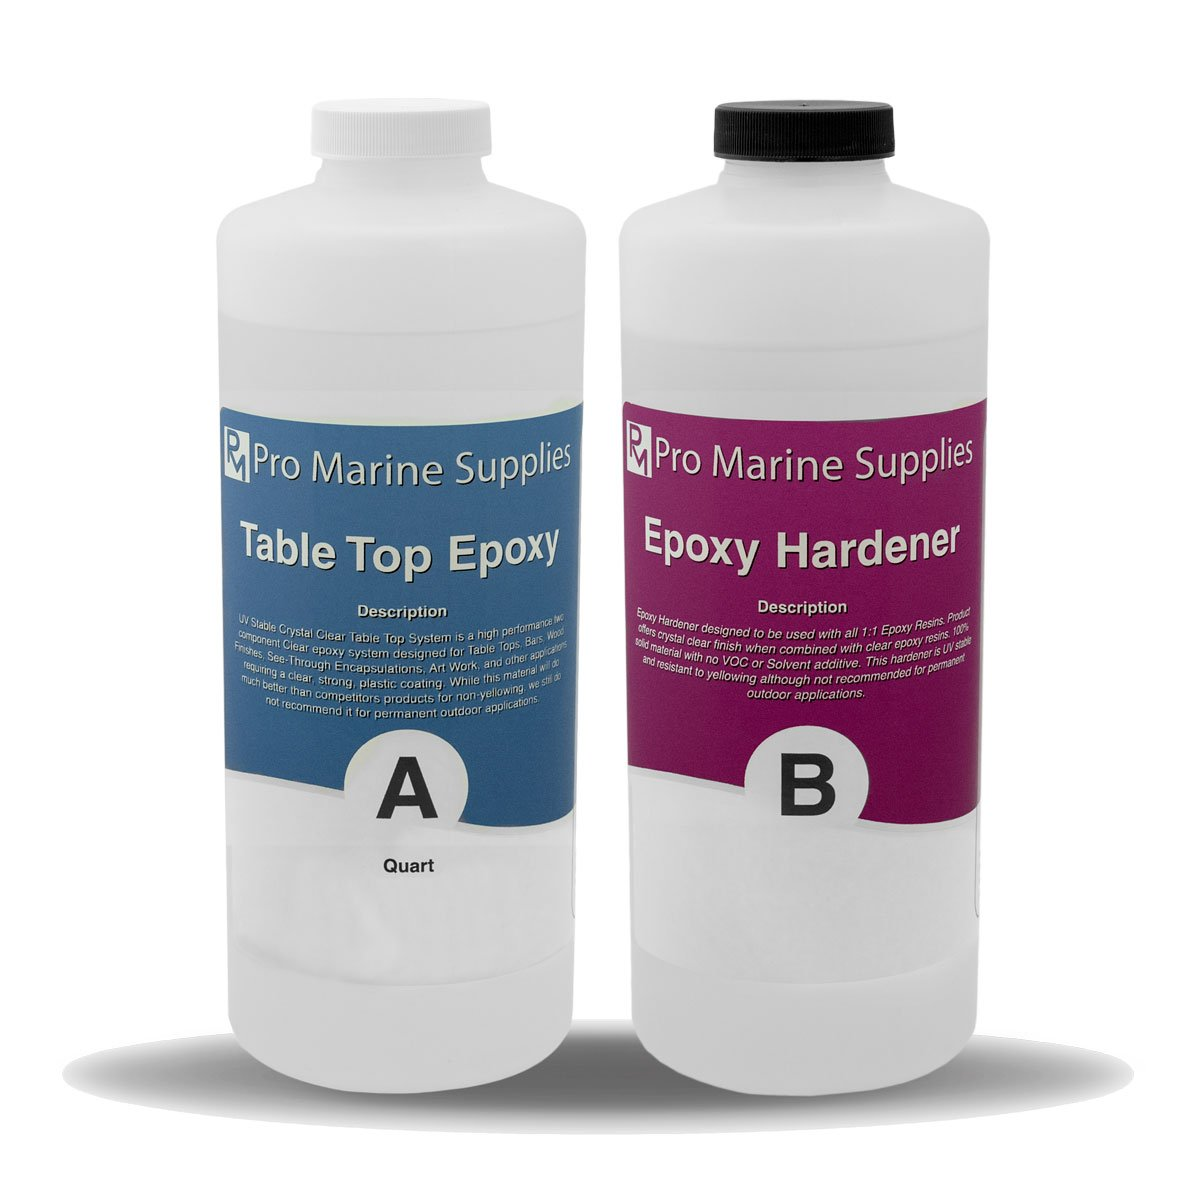 Crystal Clear Bar Table Top Epoxy Resin Coating For Wood Tabletop - 2 Quart Kit by Pro Marine Supplies (Image #1)